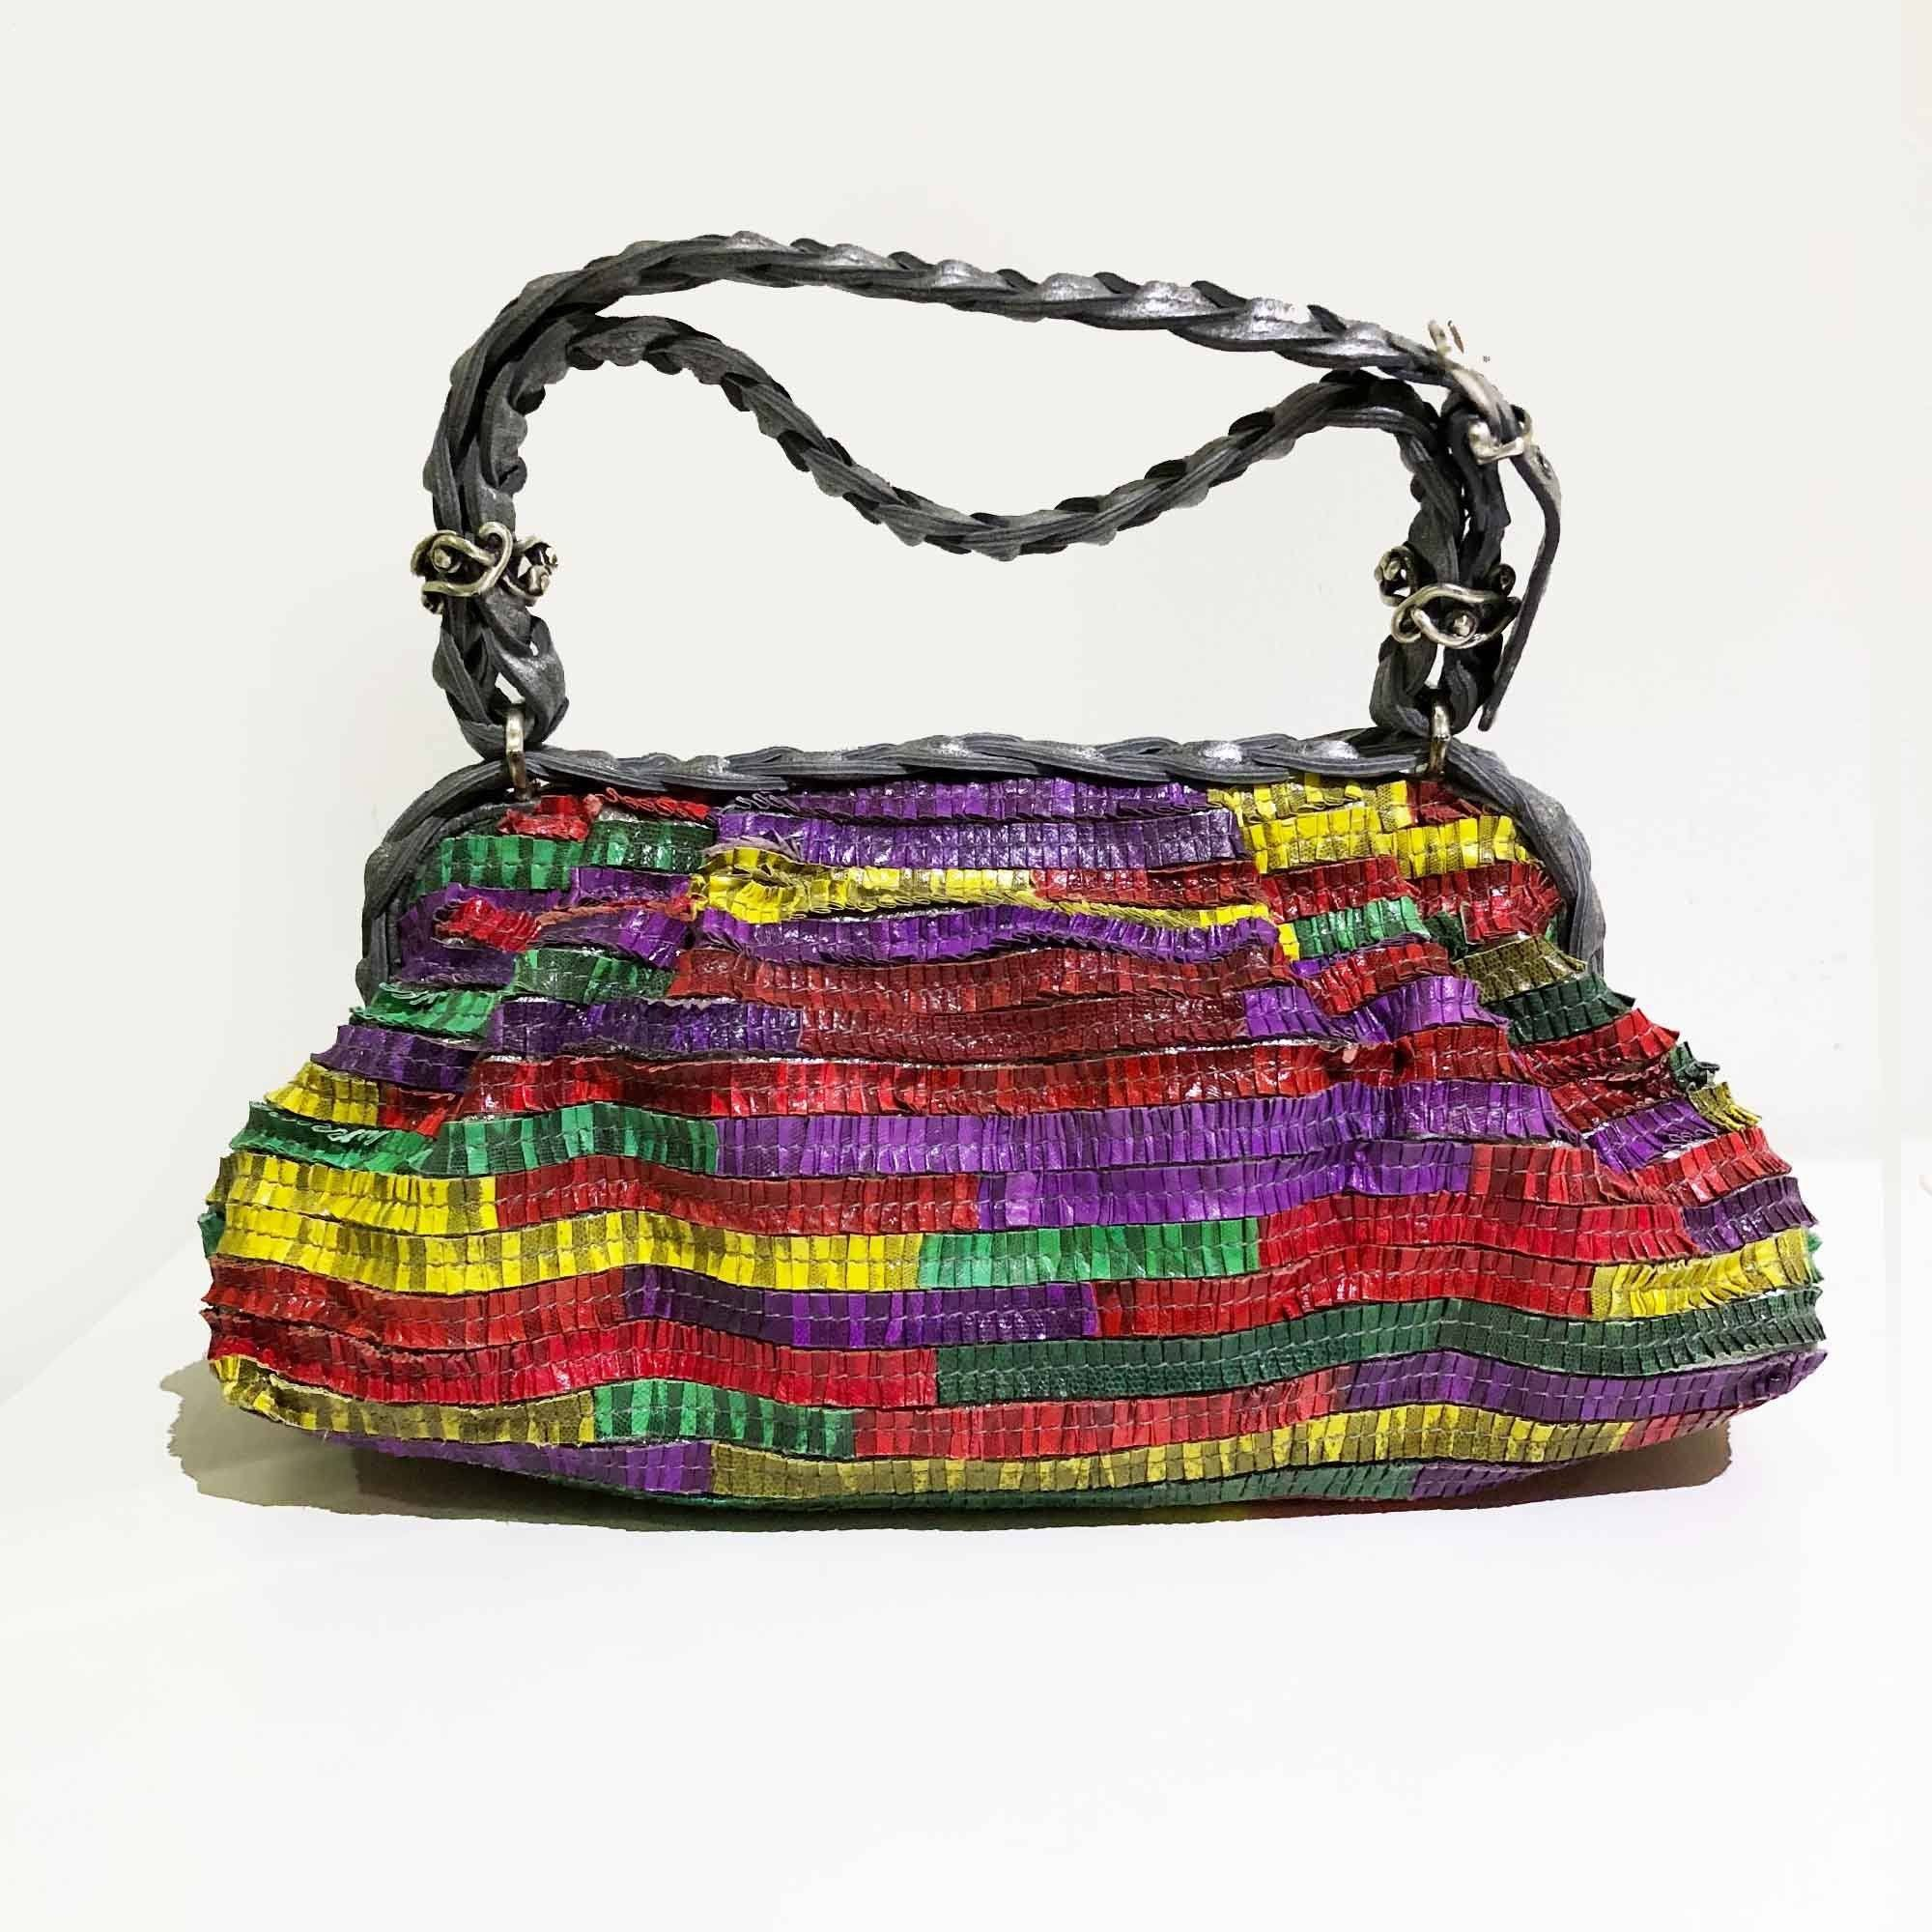 Bottega Veneta Limited Edition Multicolor Bag